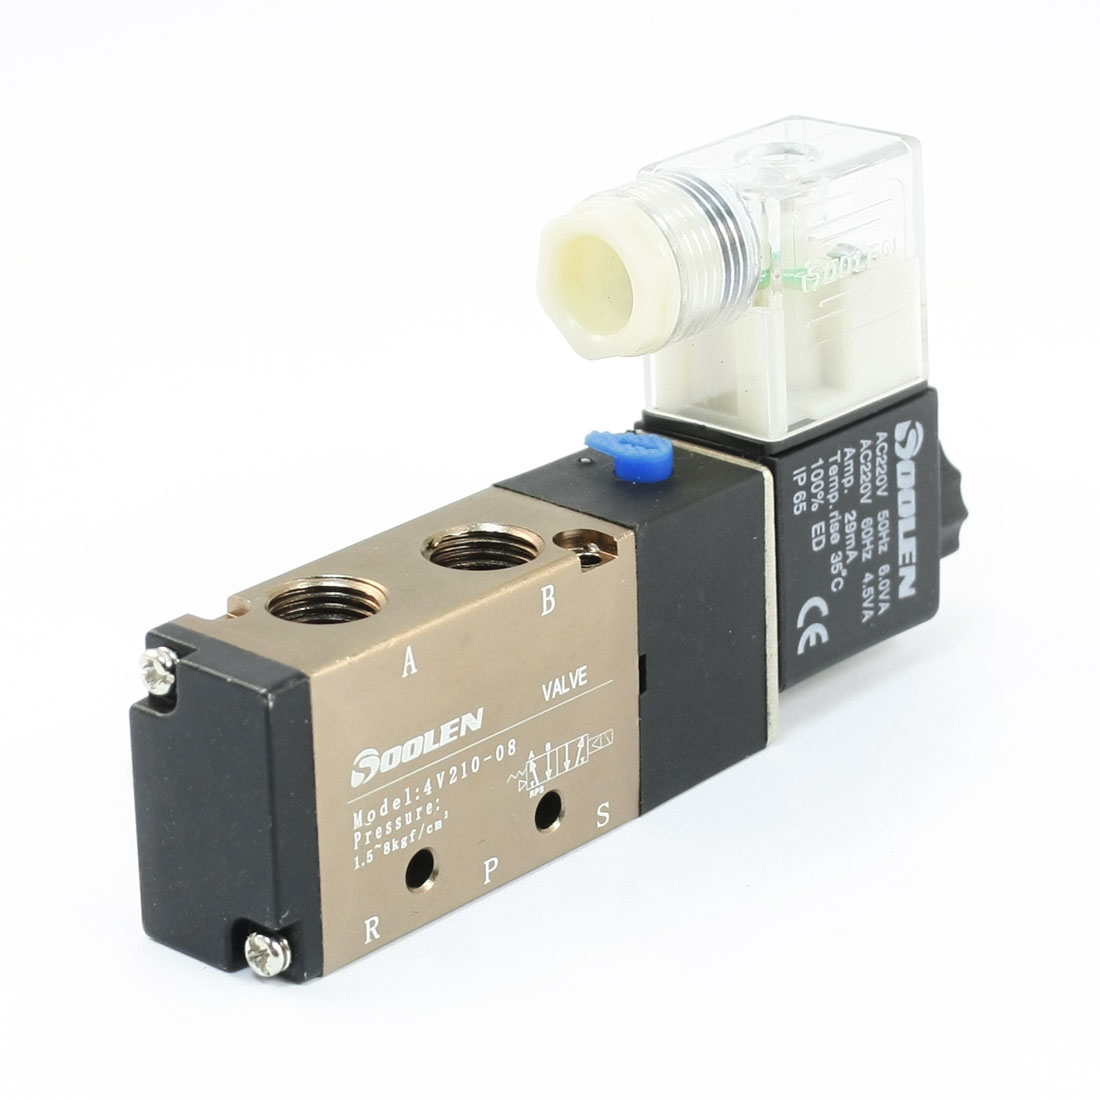 5 Ways 2 Position 4V220-08 Single Head Solenoid Valve AC 220V